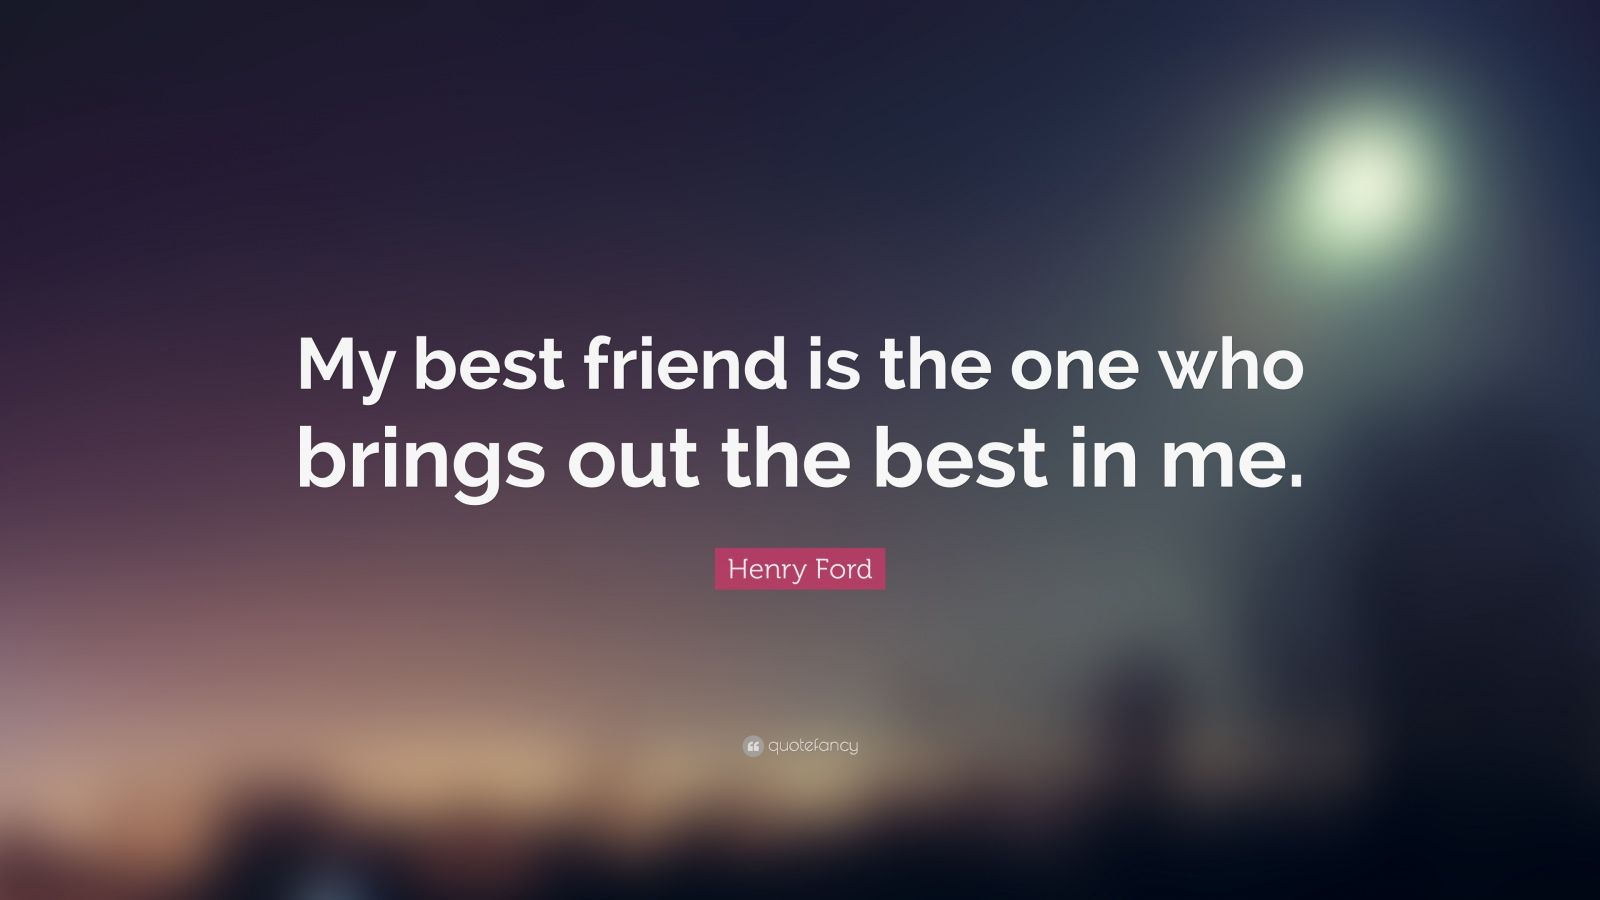 henry ford quote my best friend is the one who brings